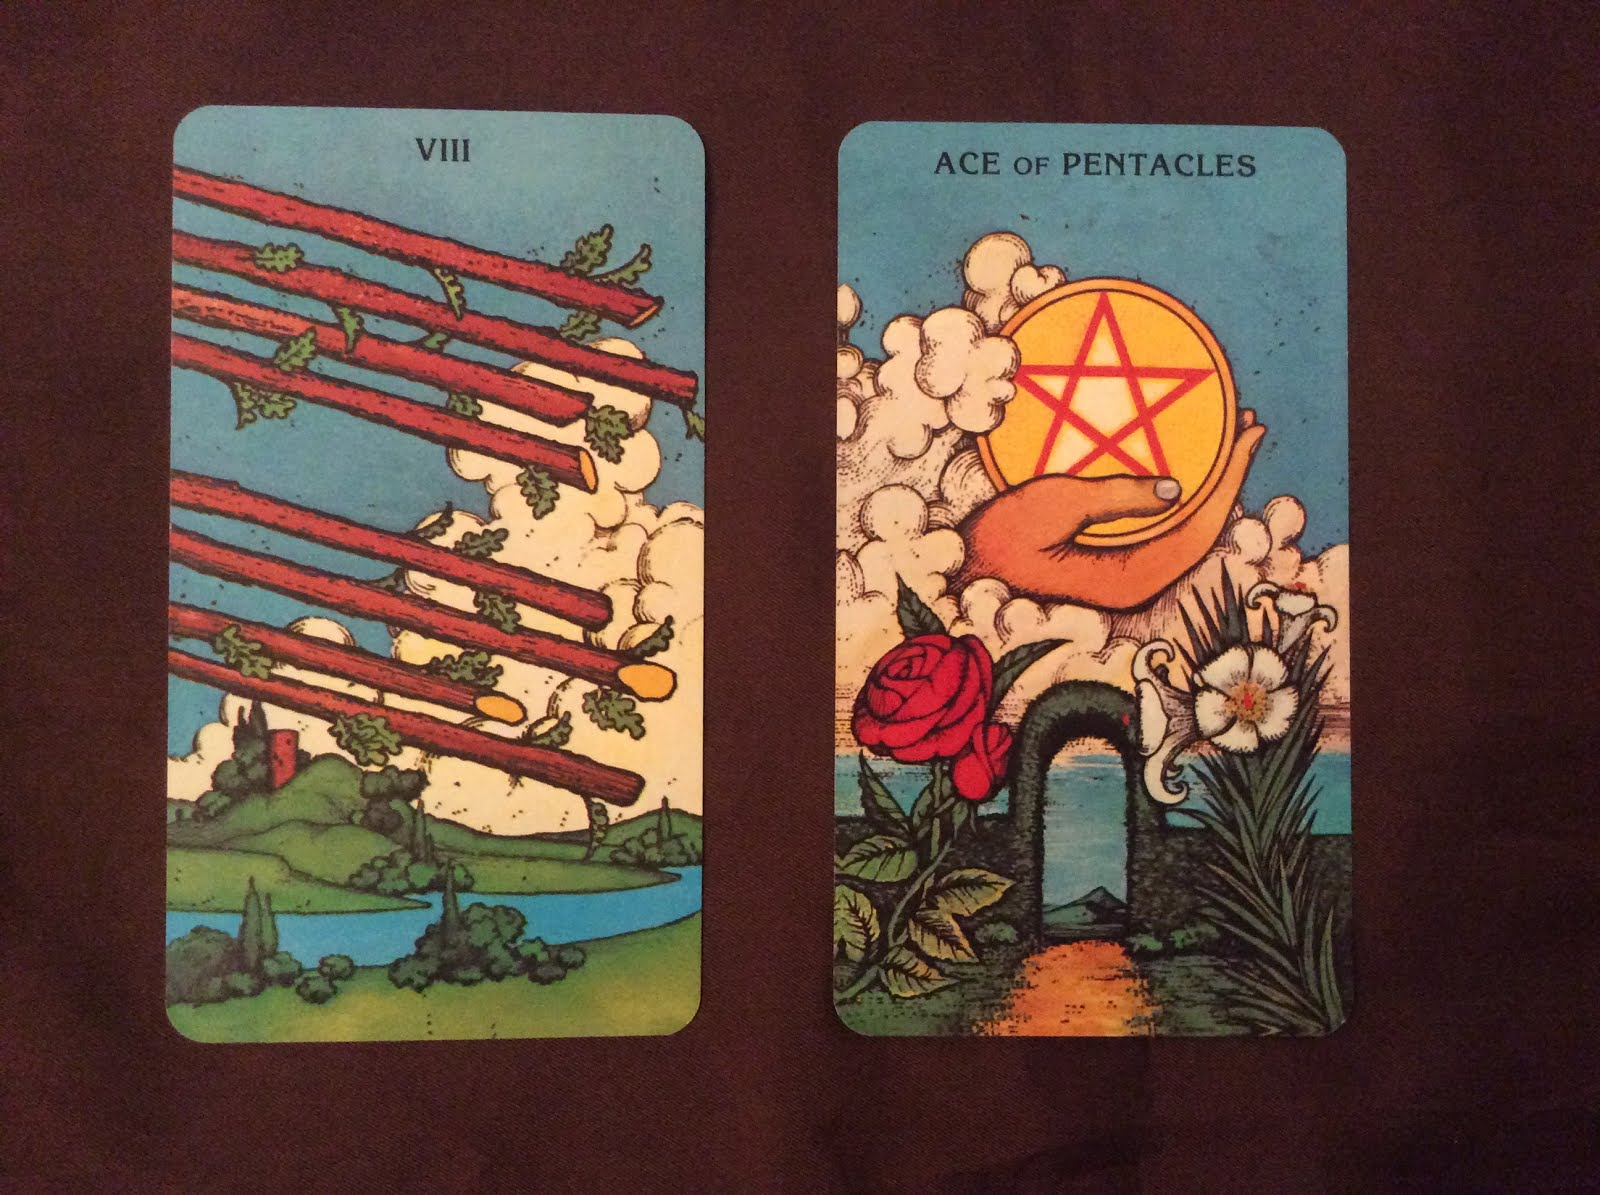 Katy's Tarot: Eight of Wands and the Ace of Pentacles